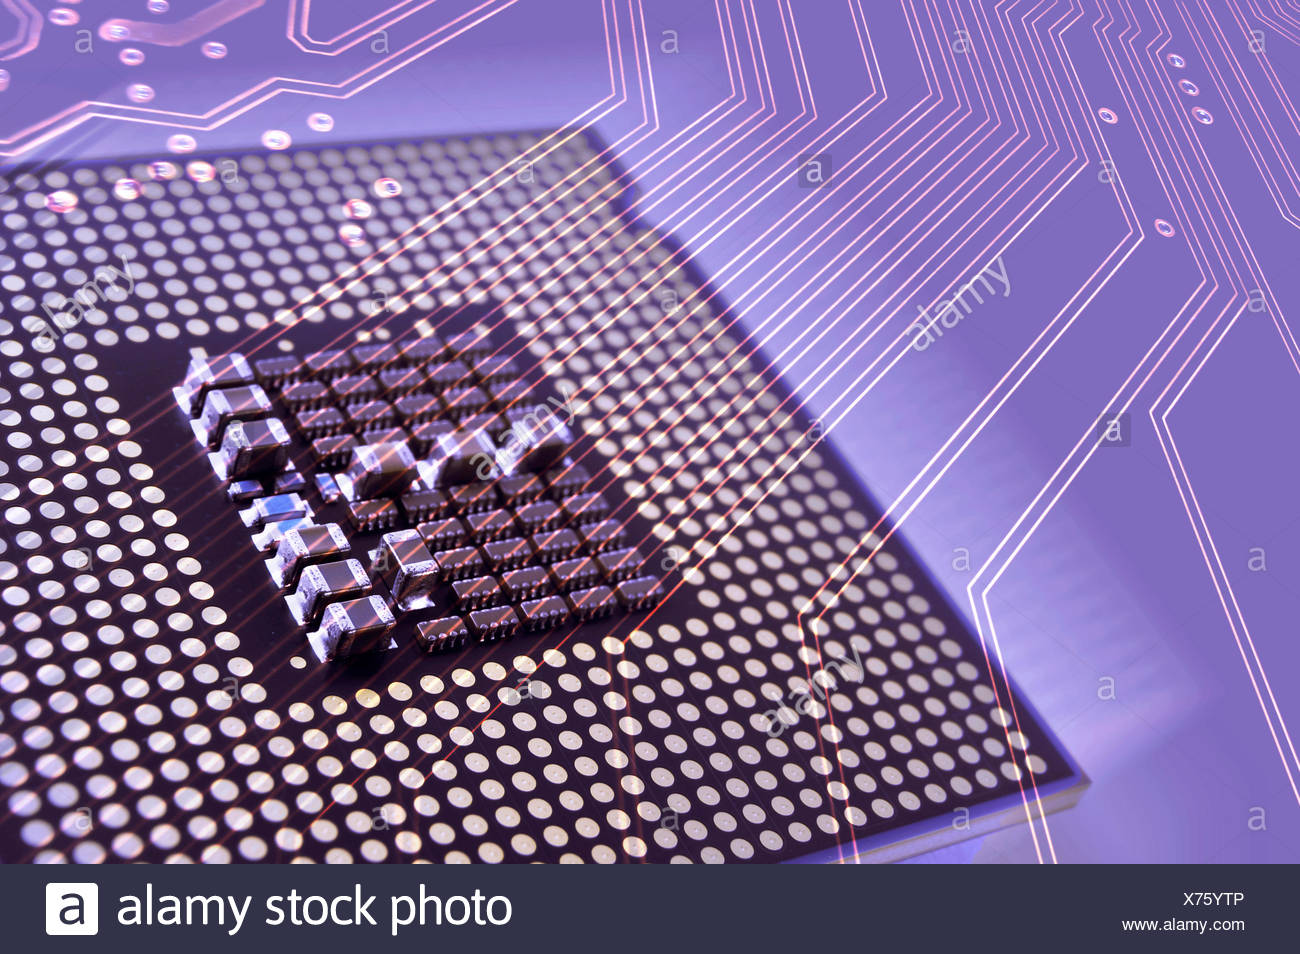 Computer processor and circuit board - Stock Image